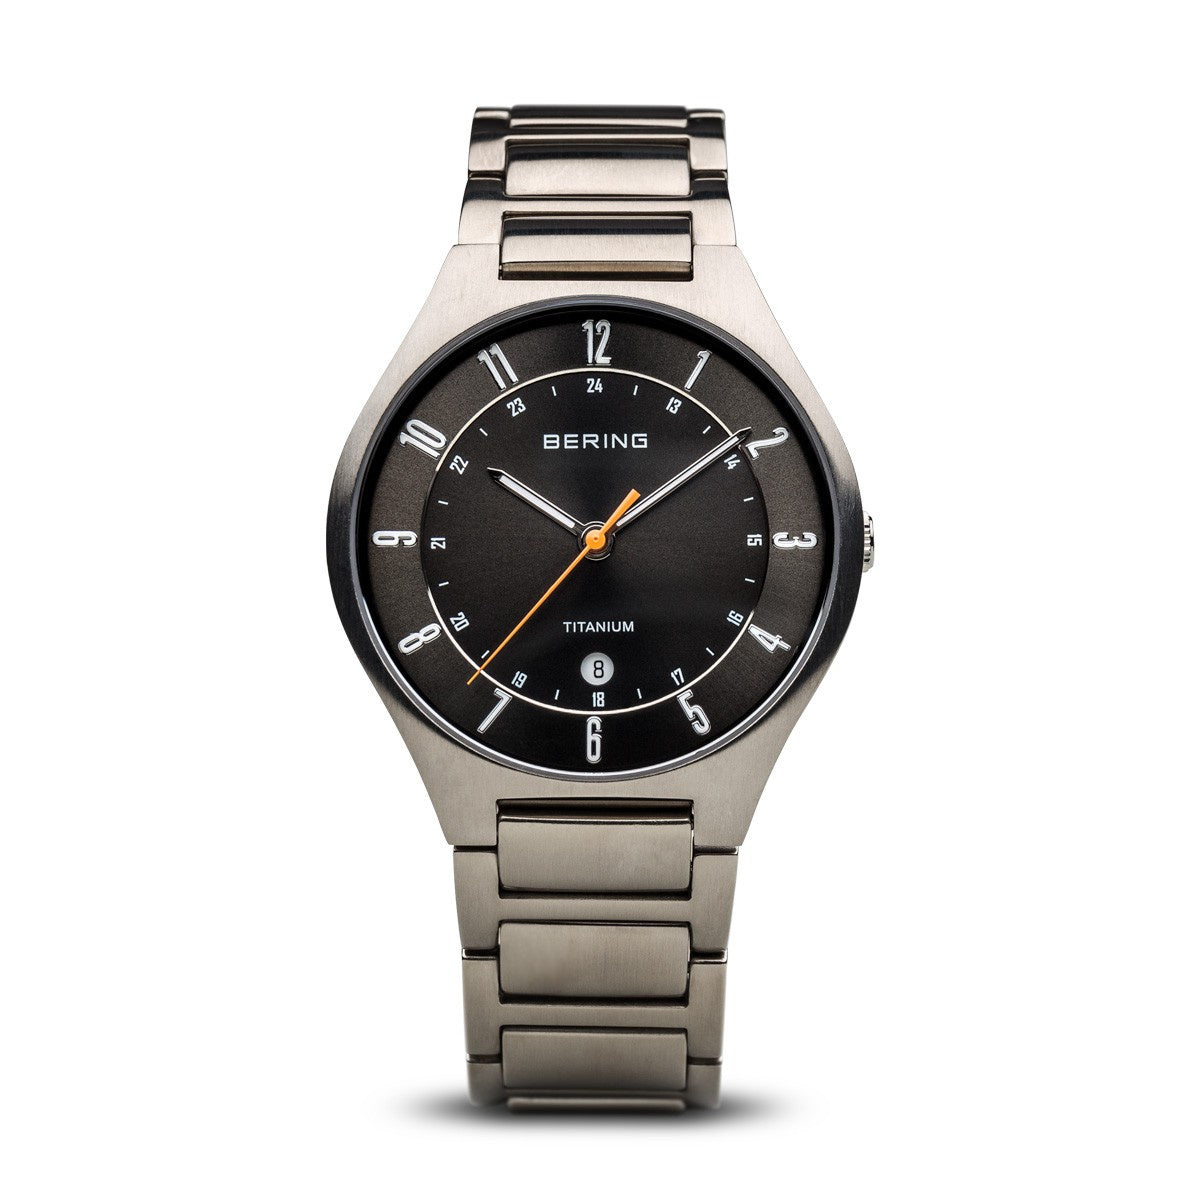 Bering Unisex Classic Titanium Brushed Silver Watch 11739-772 - Robert Openshaw Fine Jewellery